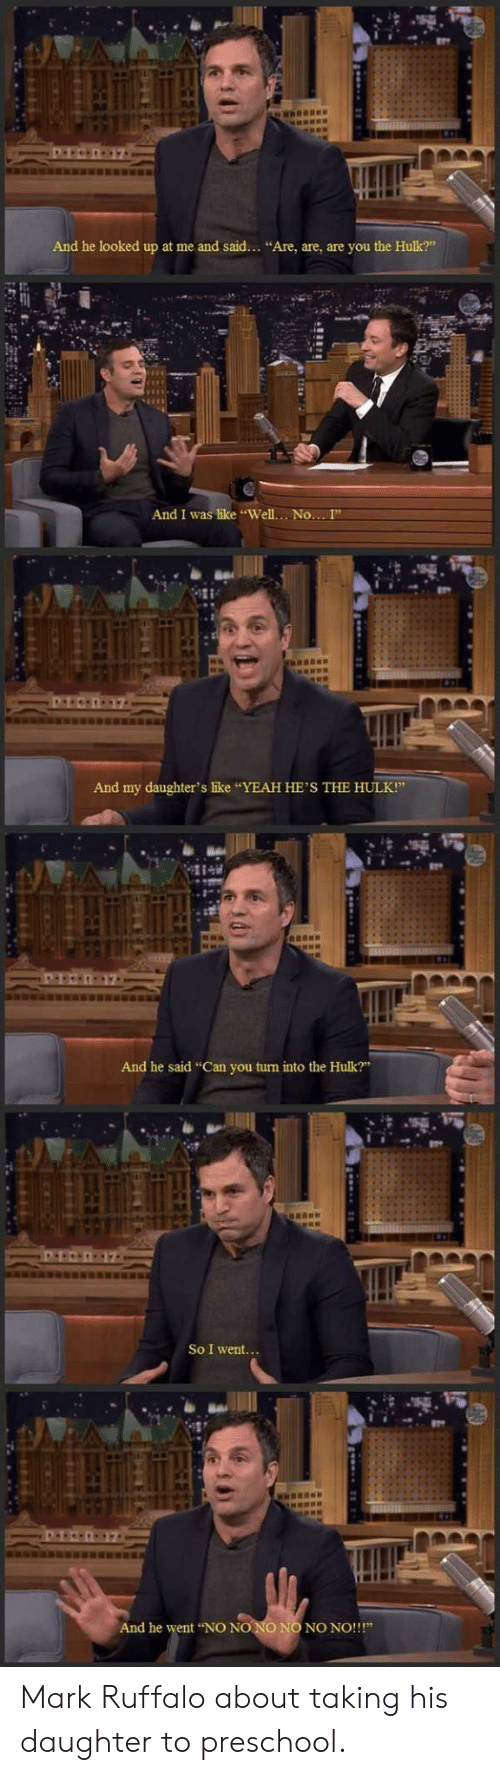 """Yeah, Hulk, and Mark Ruffalo: And he looked up at me and said... """"Are, are, are you the Hulk?""""  And I was like """"Well....No... I""""  And my daughter's like """"YEAH HE'S THE HULK!""""  And he said """"Can you turn into the Hulk?""""  So I went...  And he went NO NO NO NO NO NO!!!"""" Mark Ruffalo about taking his daughter to preschool."""